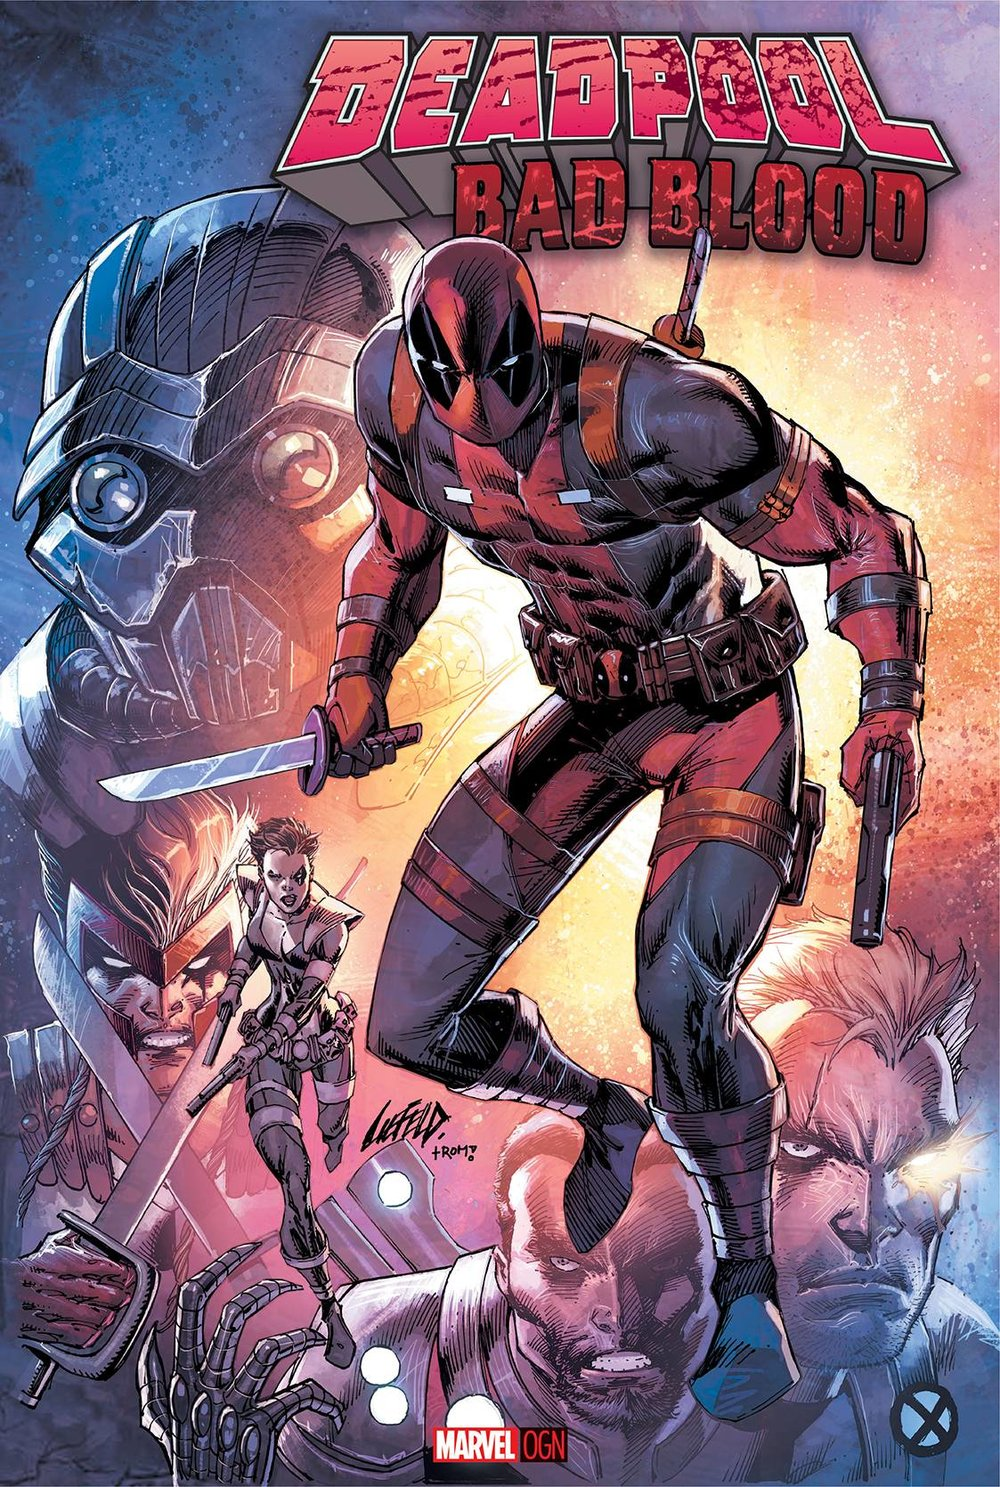 DEADPOOL BAD BLOOD OGN HC.jpg